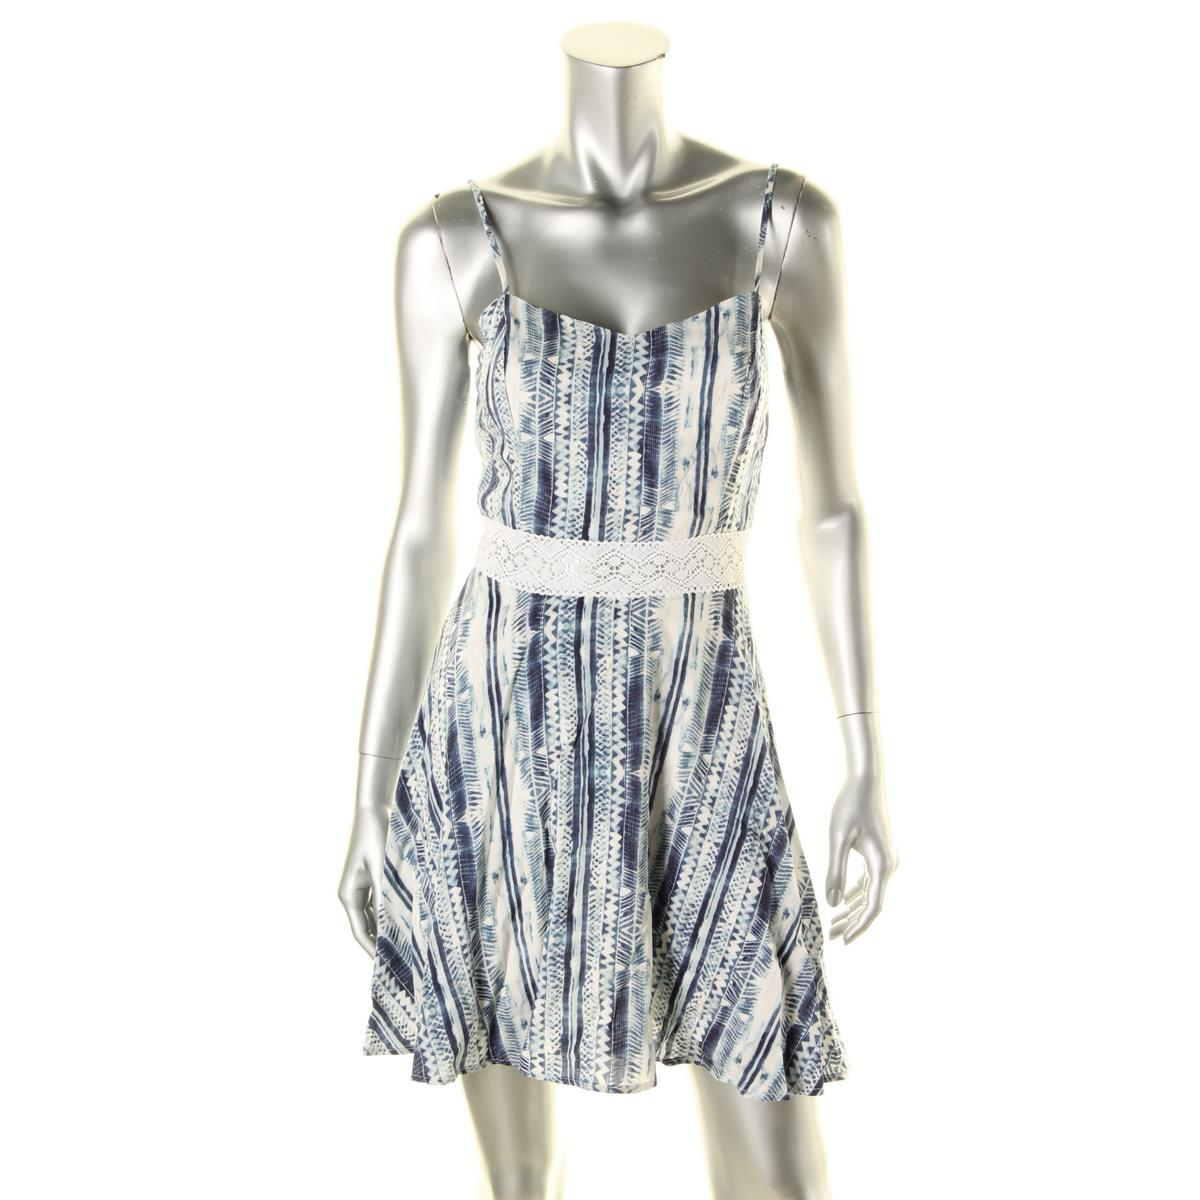 Aqua-2182-Womens-Blue-Printed-Crochet-Trim-Spaghetti-Straps-Casual-Dress-L-BHFO